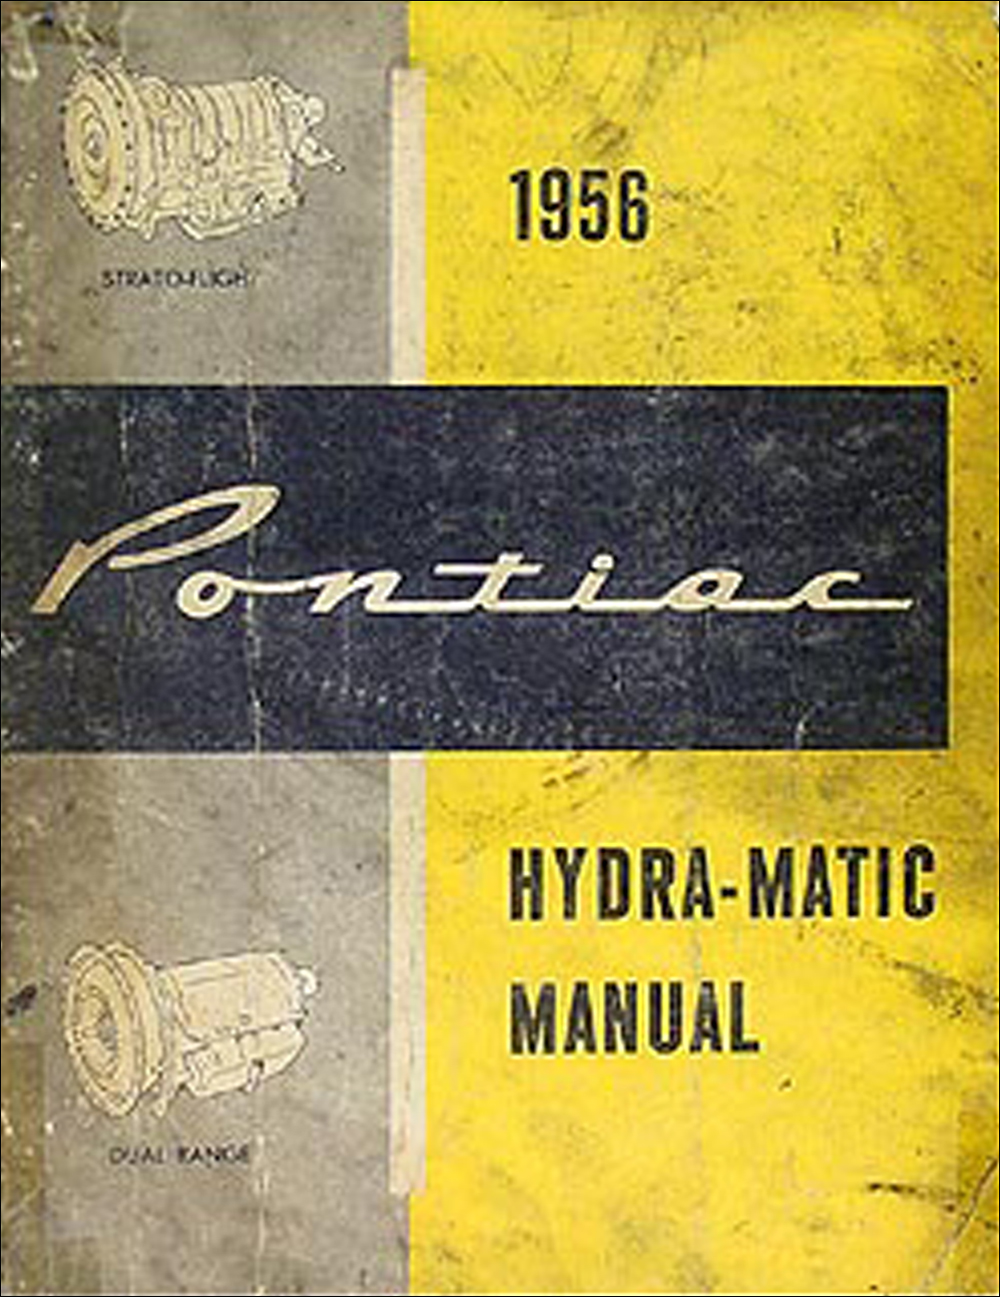 1956 Pontiac Hydra-Matic Transmission Repair Manual Original